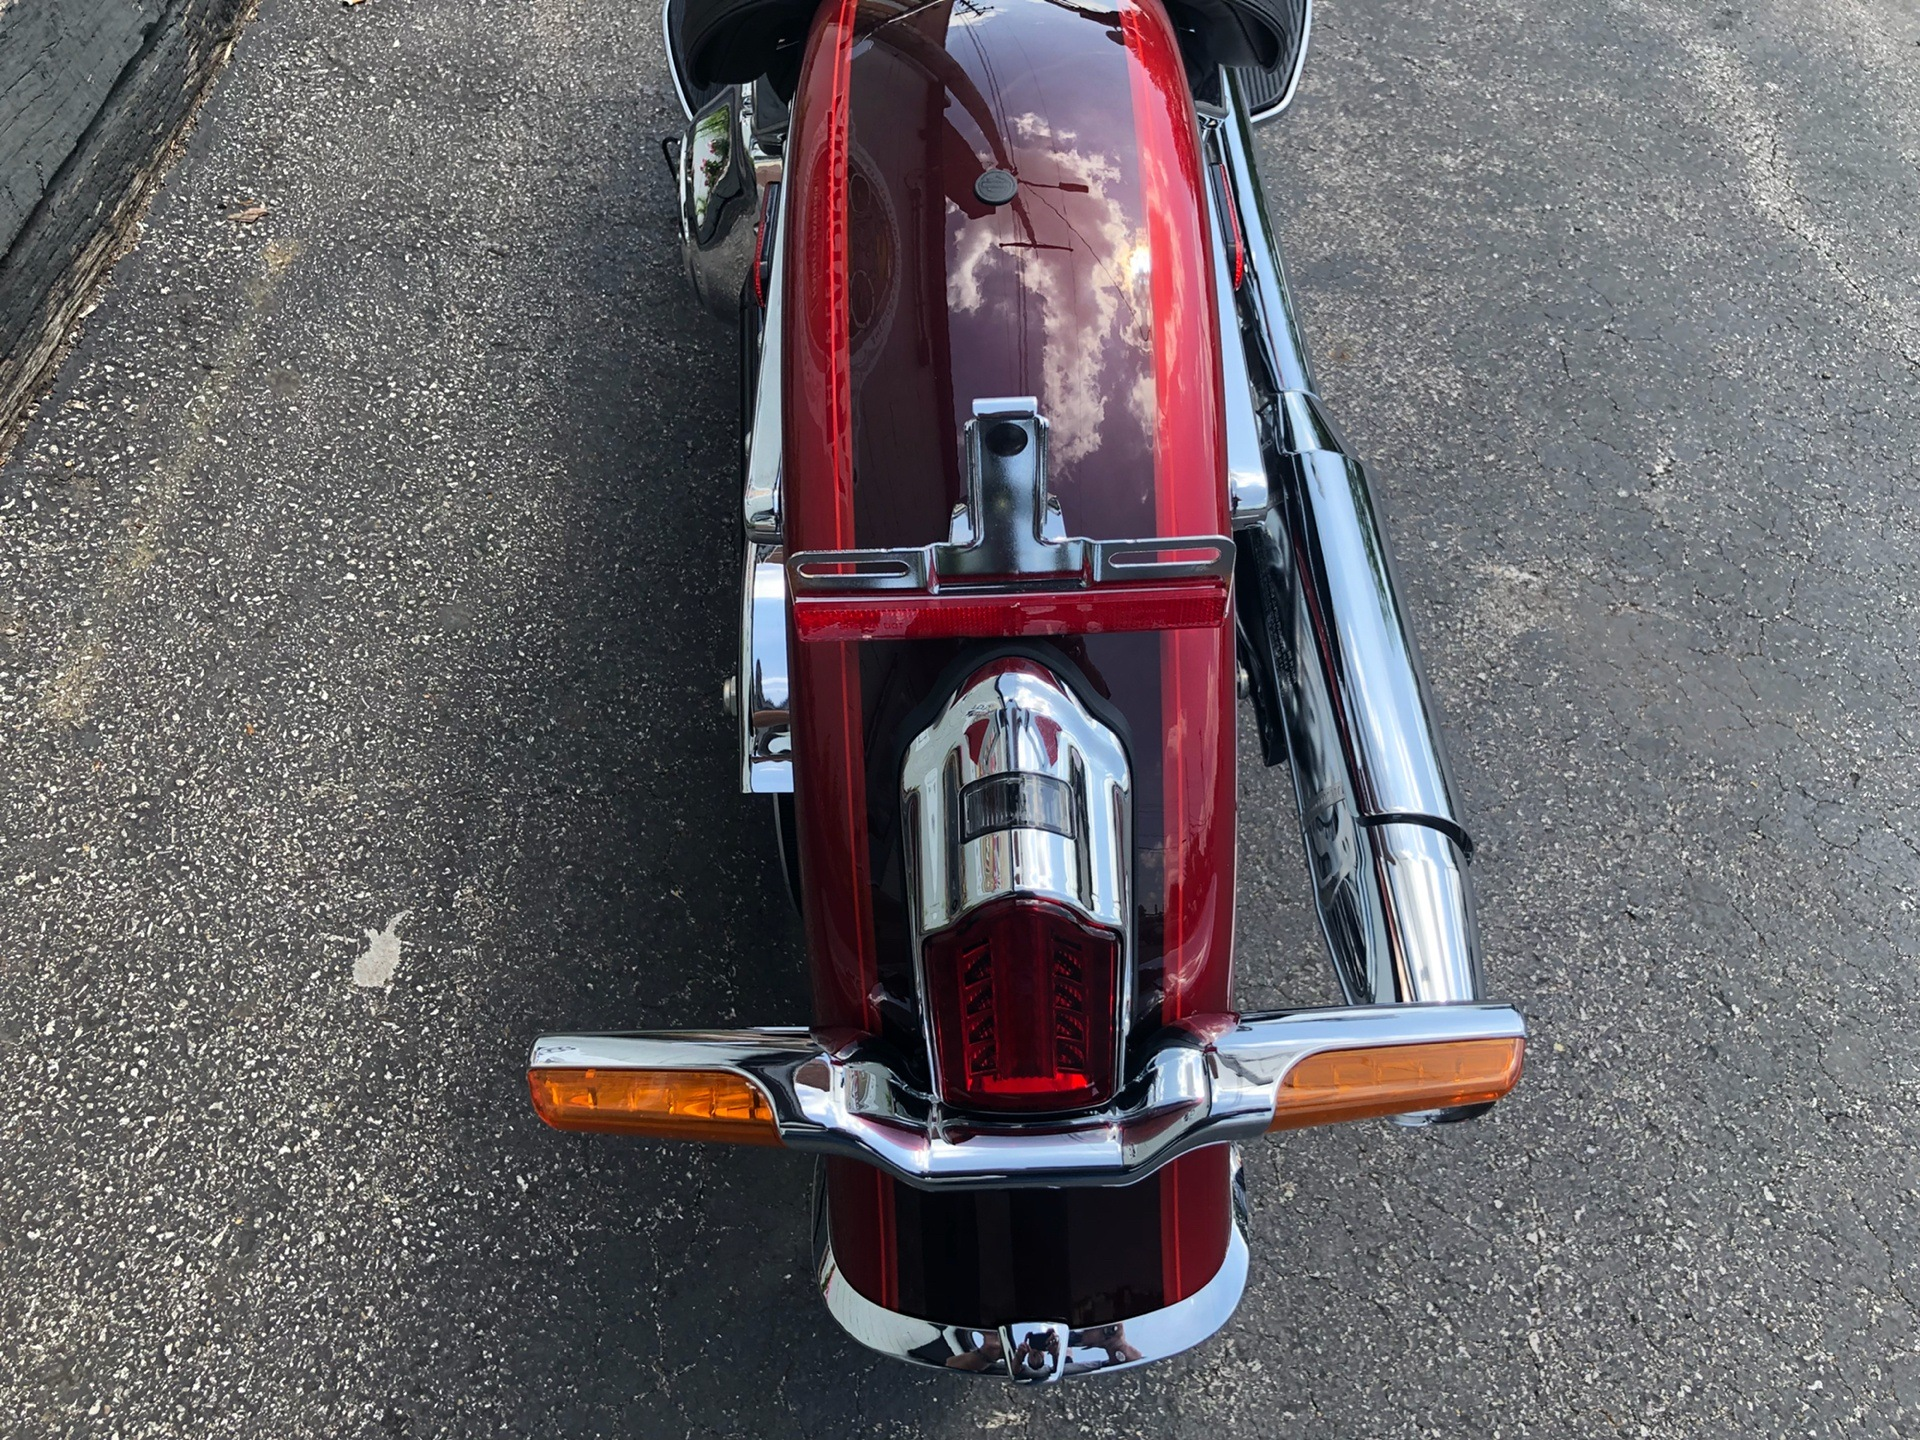 2019 Harley-Davidson Deluxe in Sunbury, Ohio - Photo 13